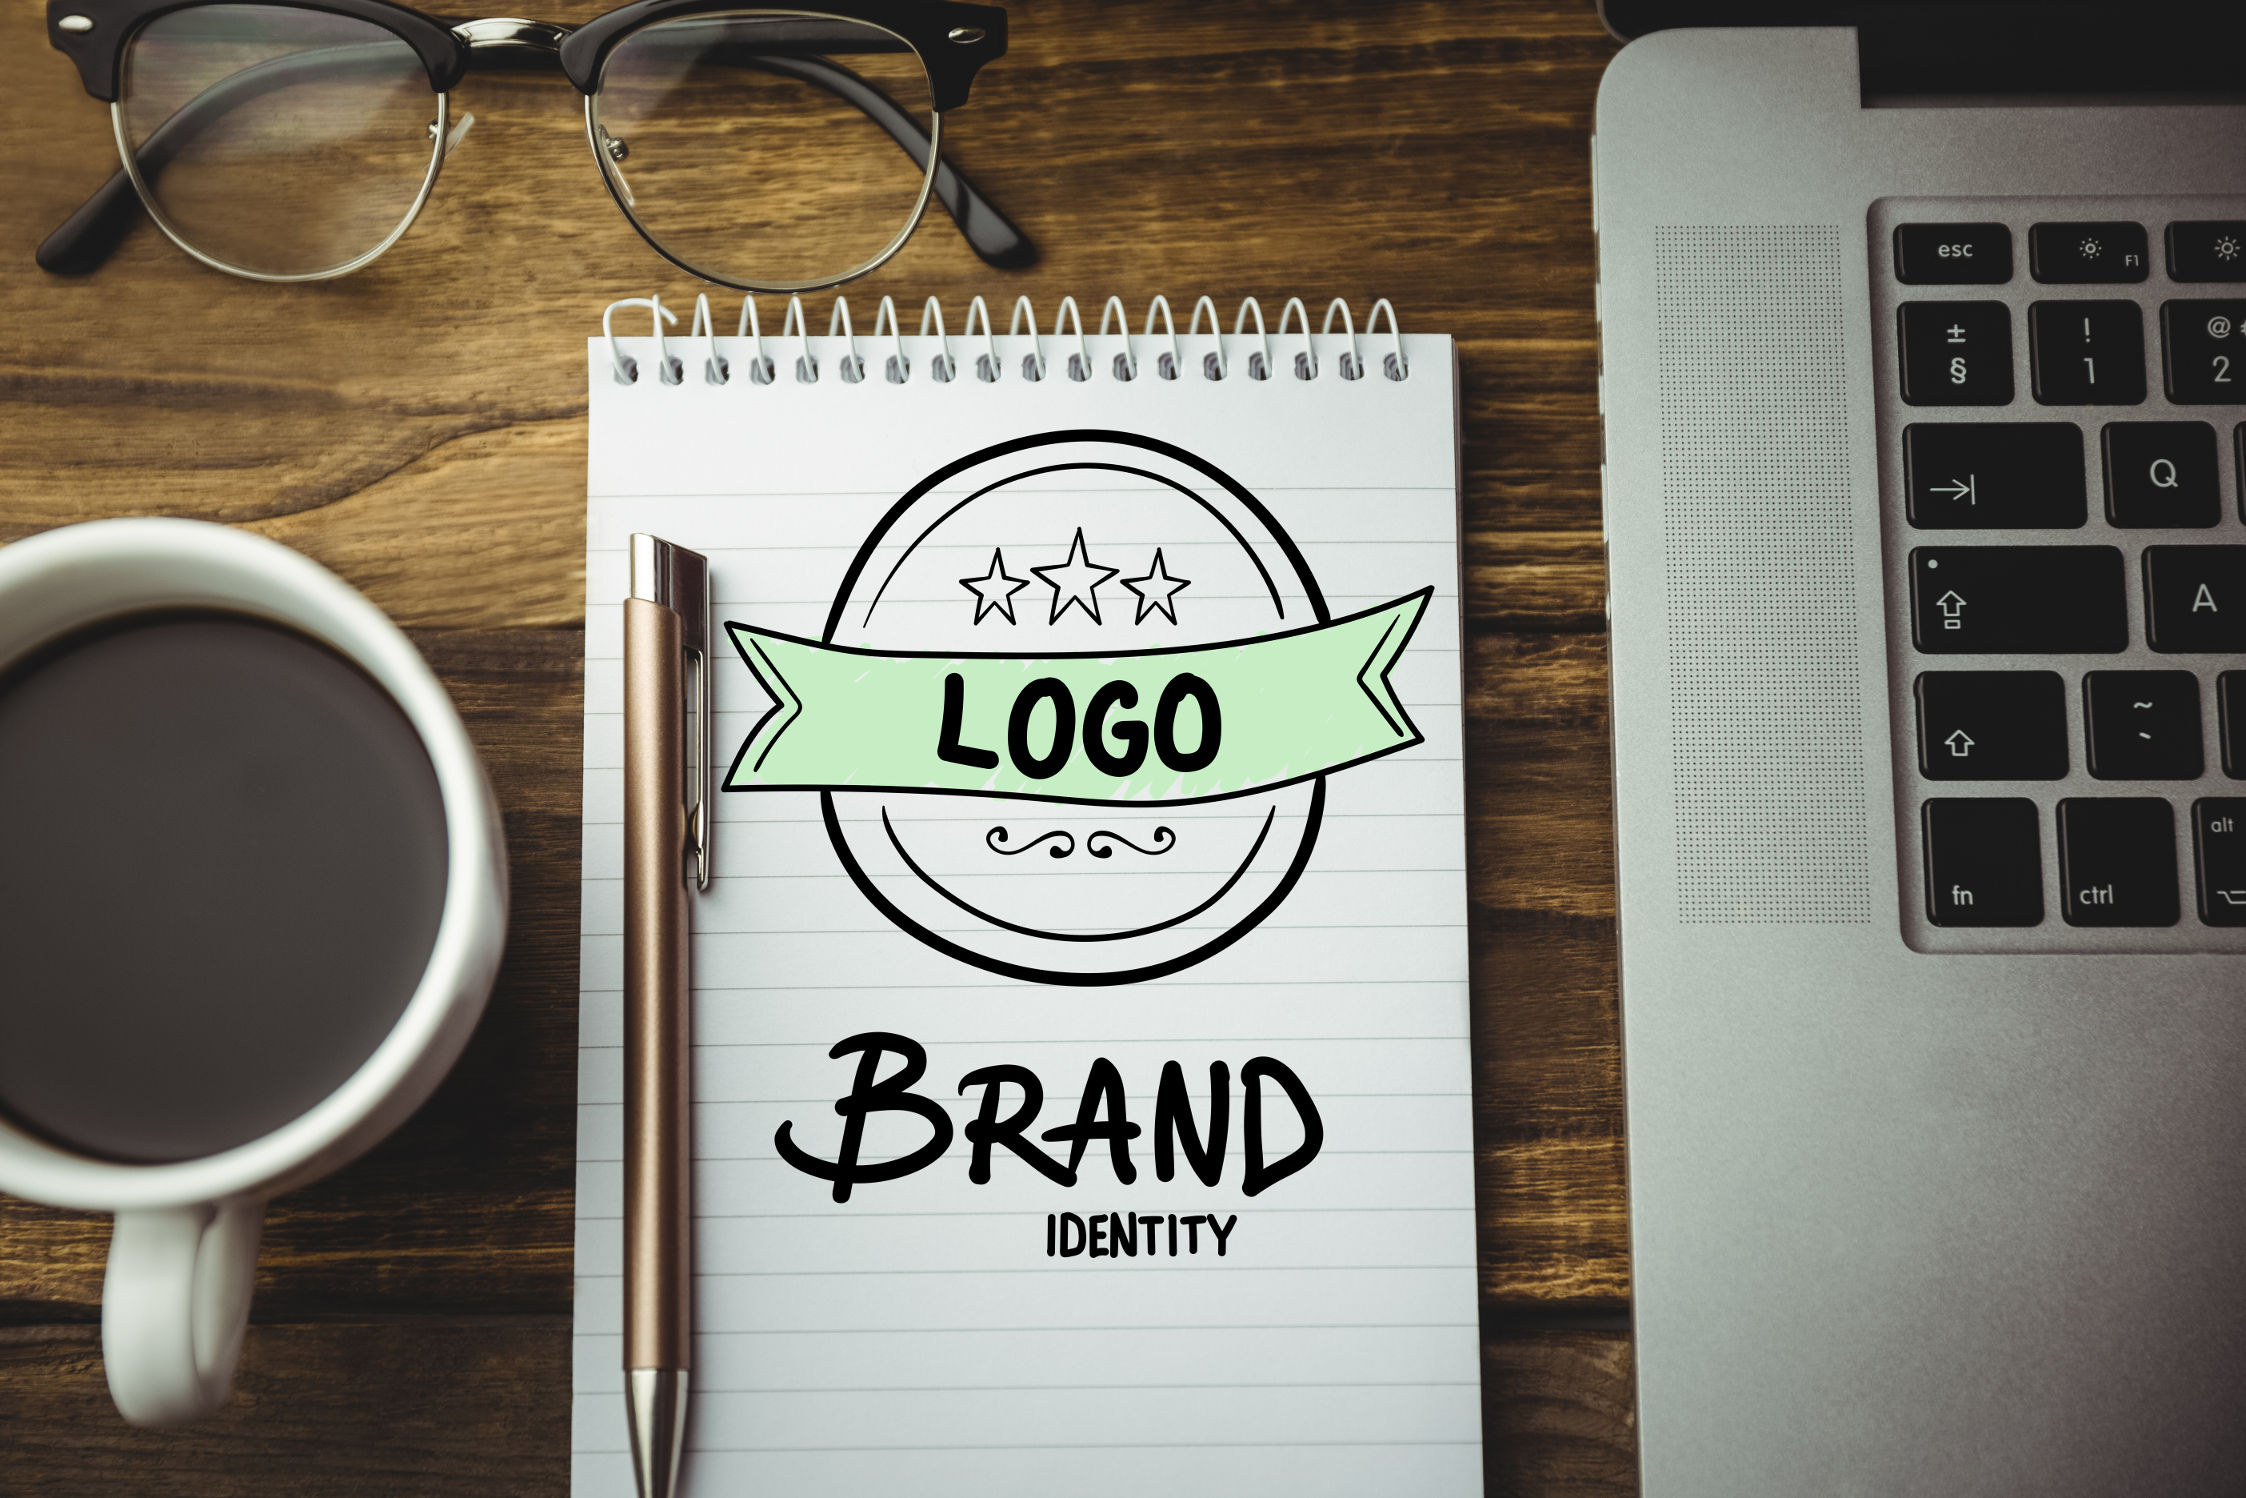 Register your logo as a trade mark